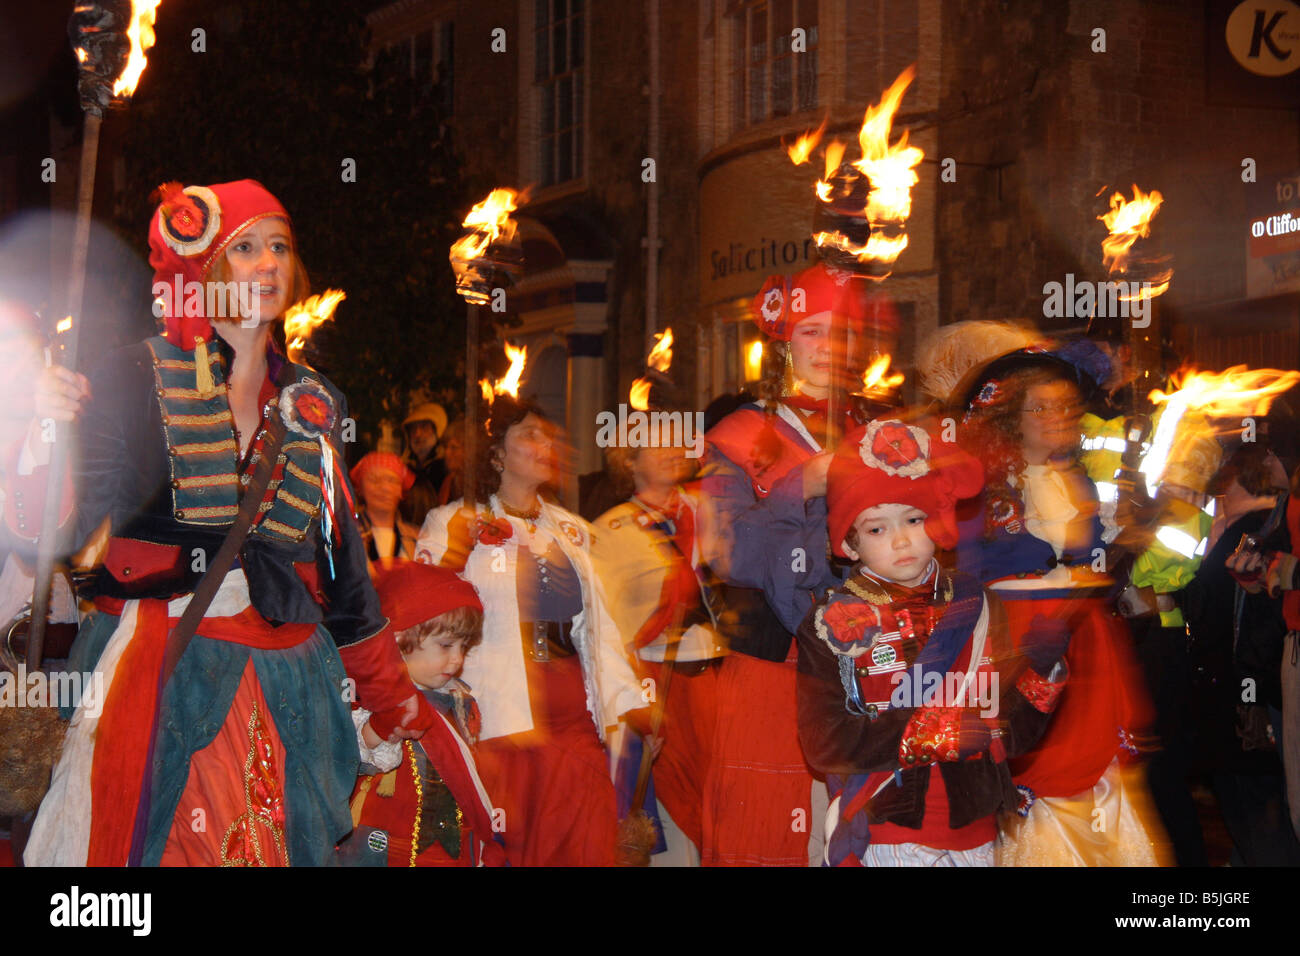 LEWES BONFIRE NIGHT GUY FAWKES FIRE WORKS NOVEMBER 5 HISTORICAL PARADE  SUSSEX SOCIETY - Stock Image